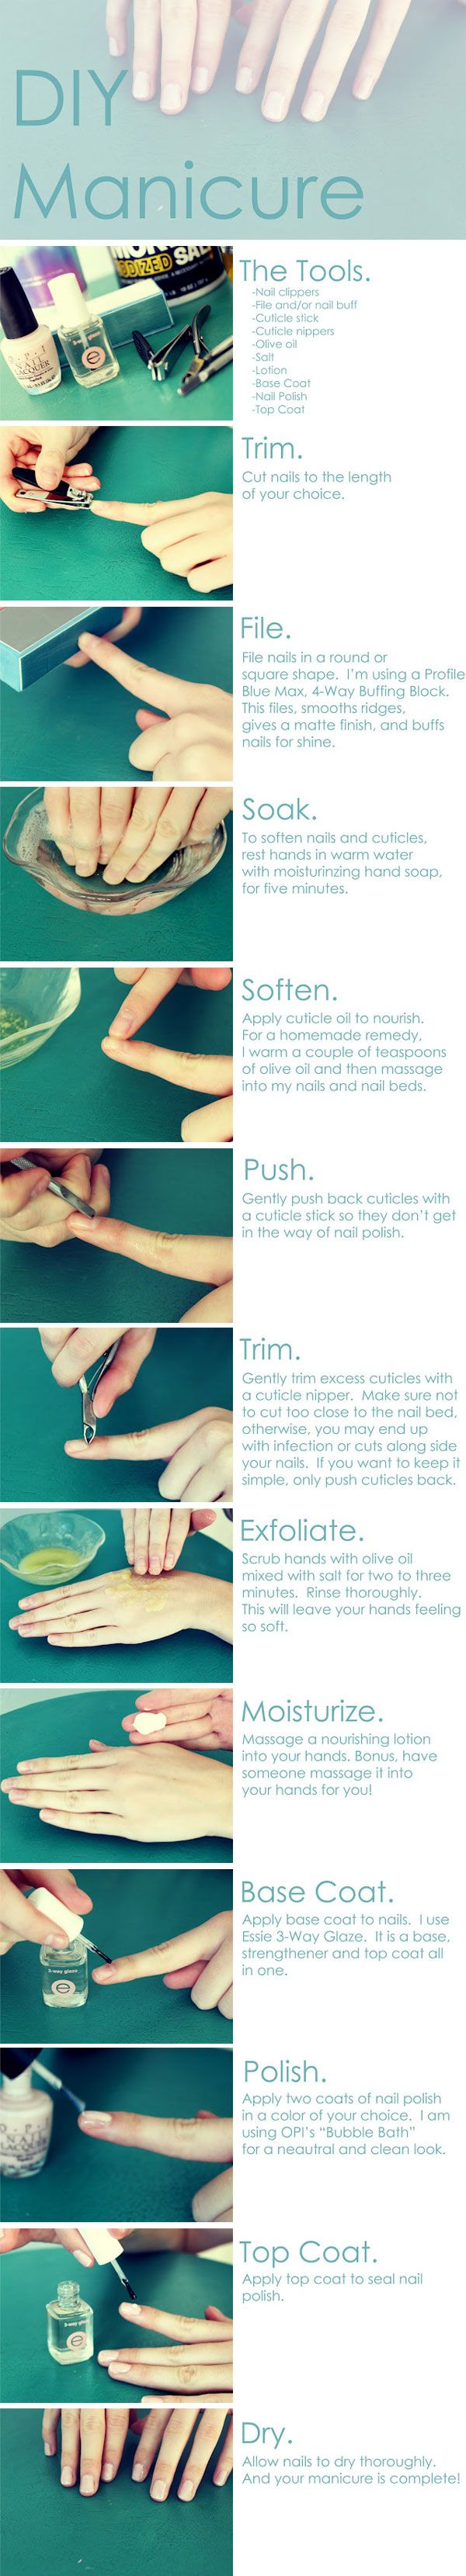 Best Diy Manicure, Its Not Just About A Great Color, Its Also About Clean